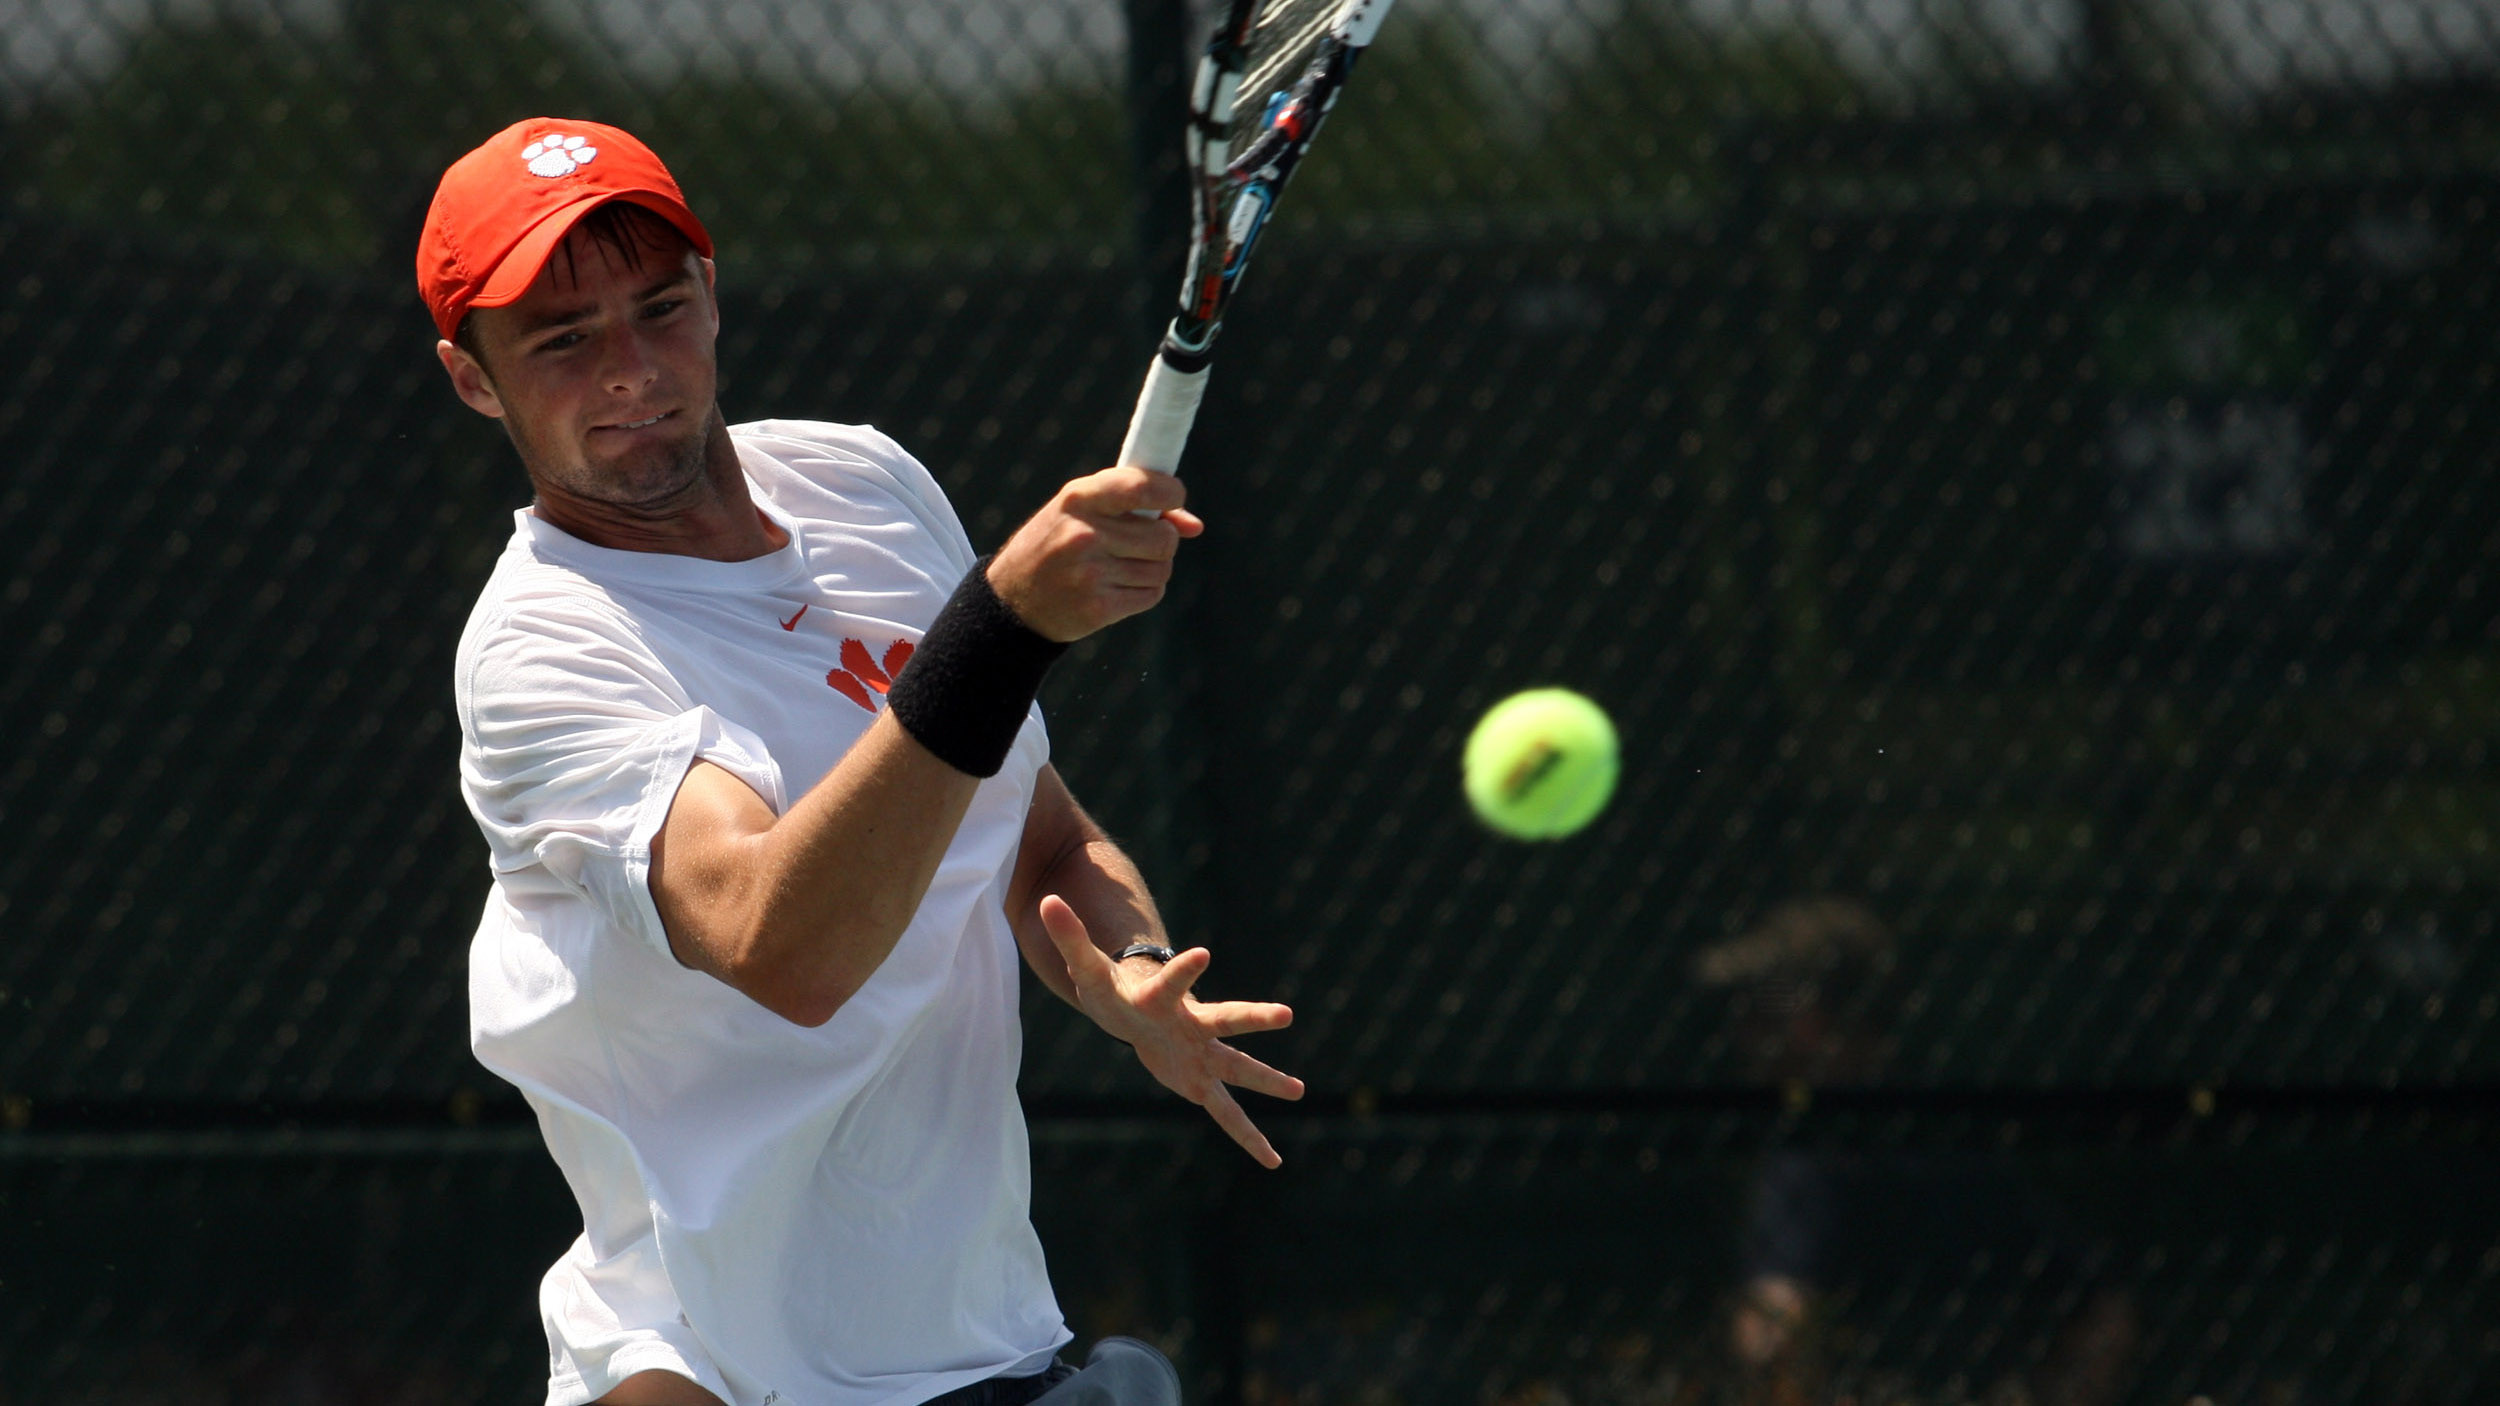 Clemson Men's Tennis Team is Ranked 23rd